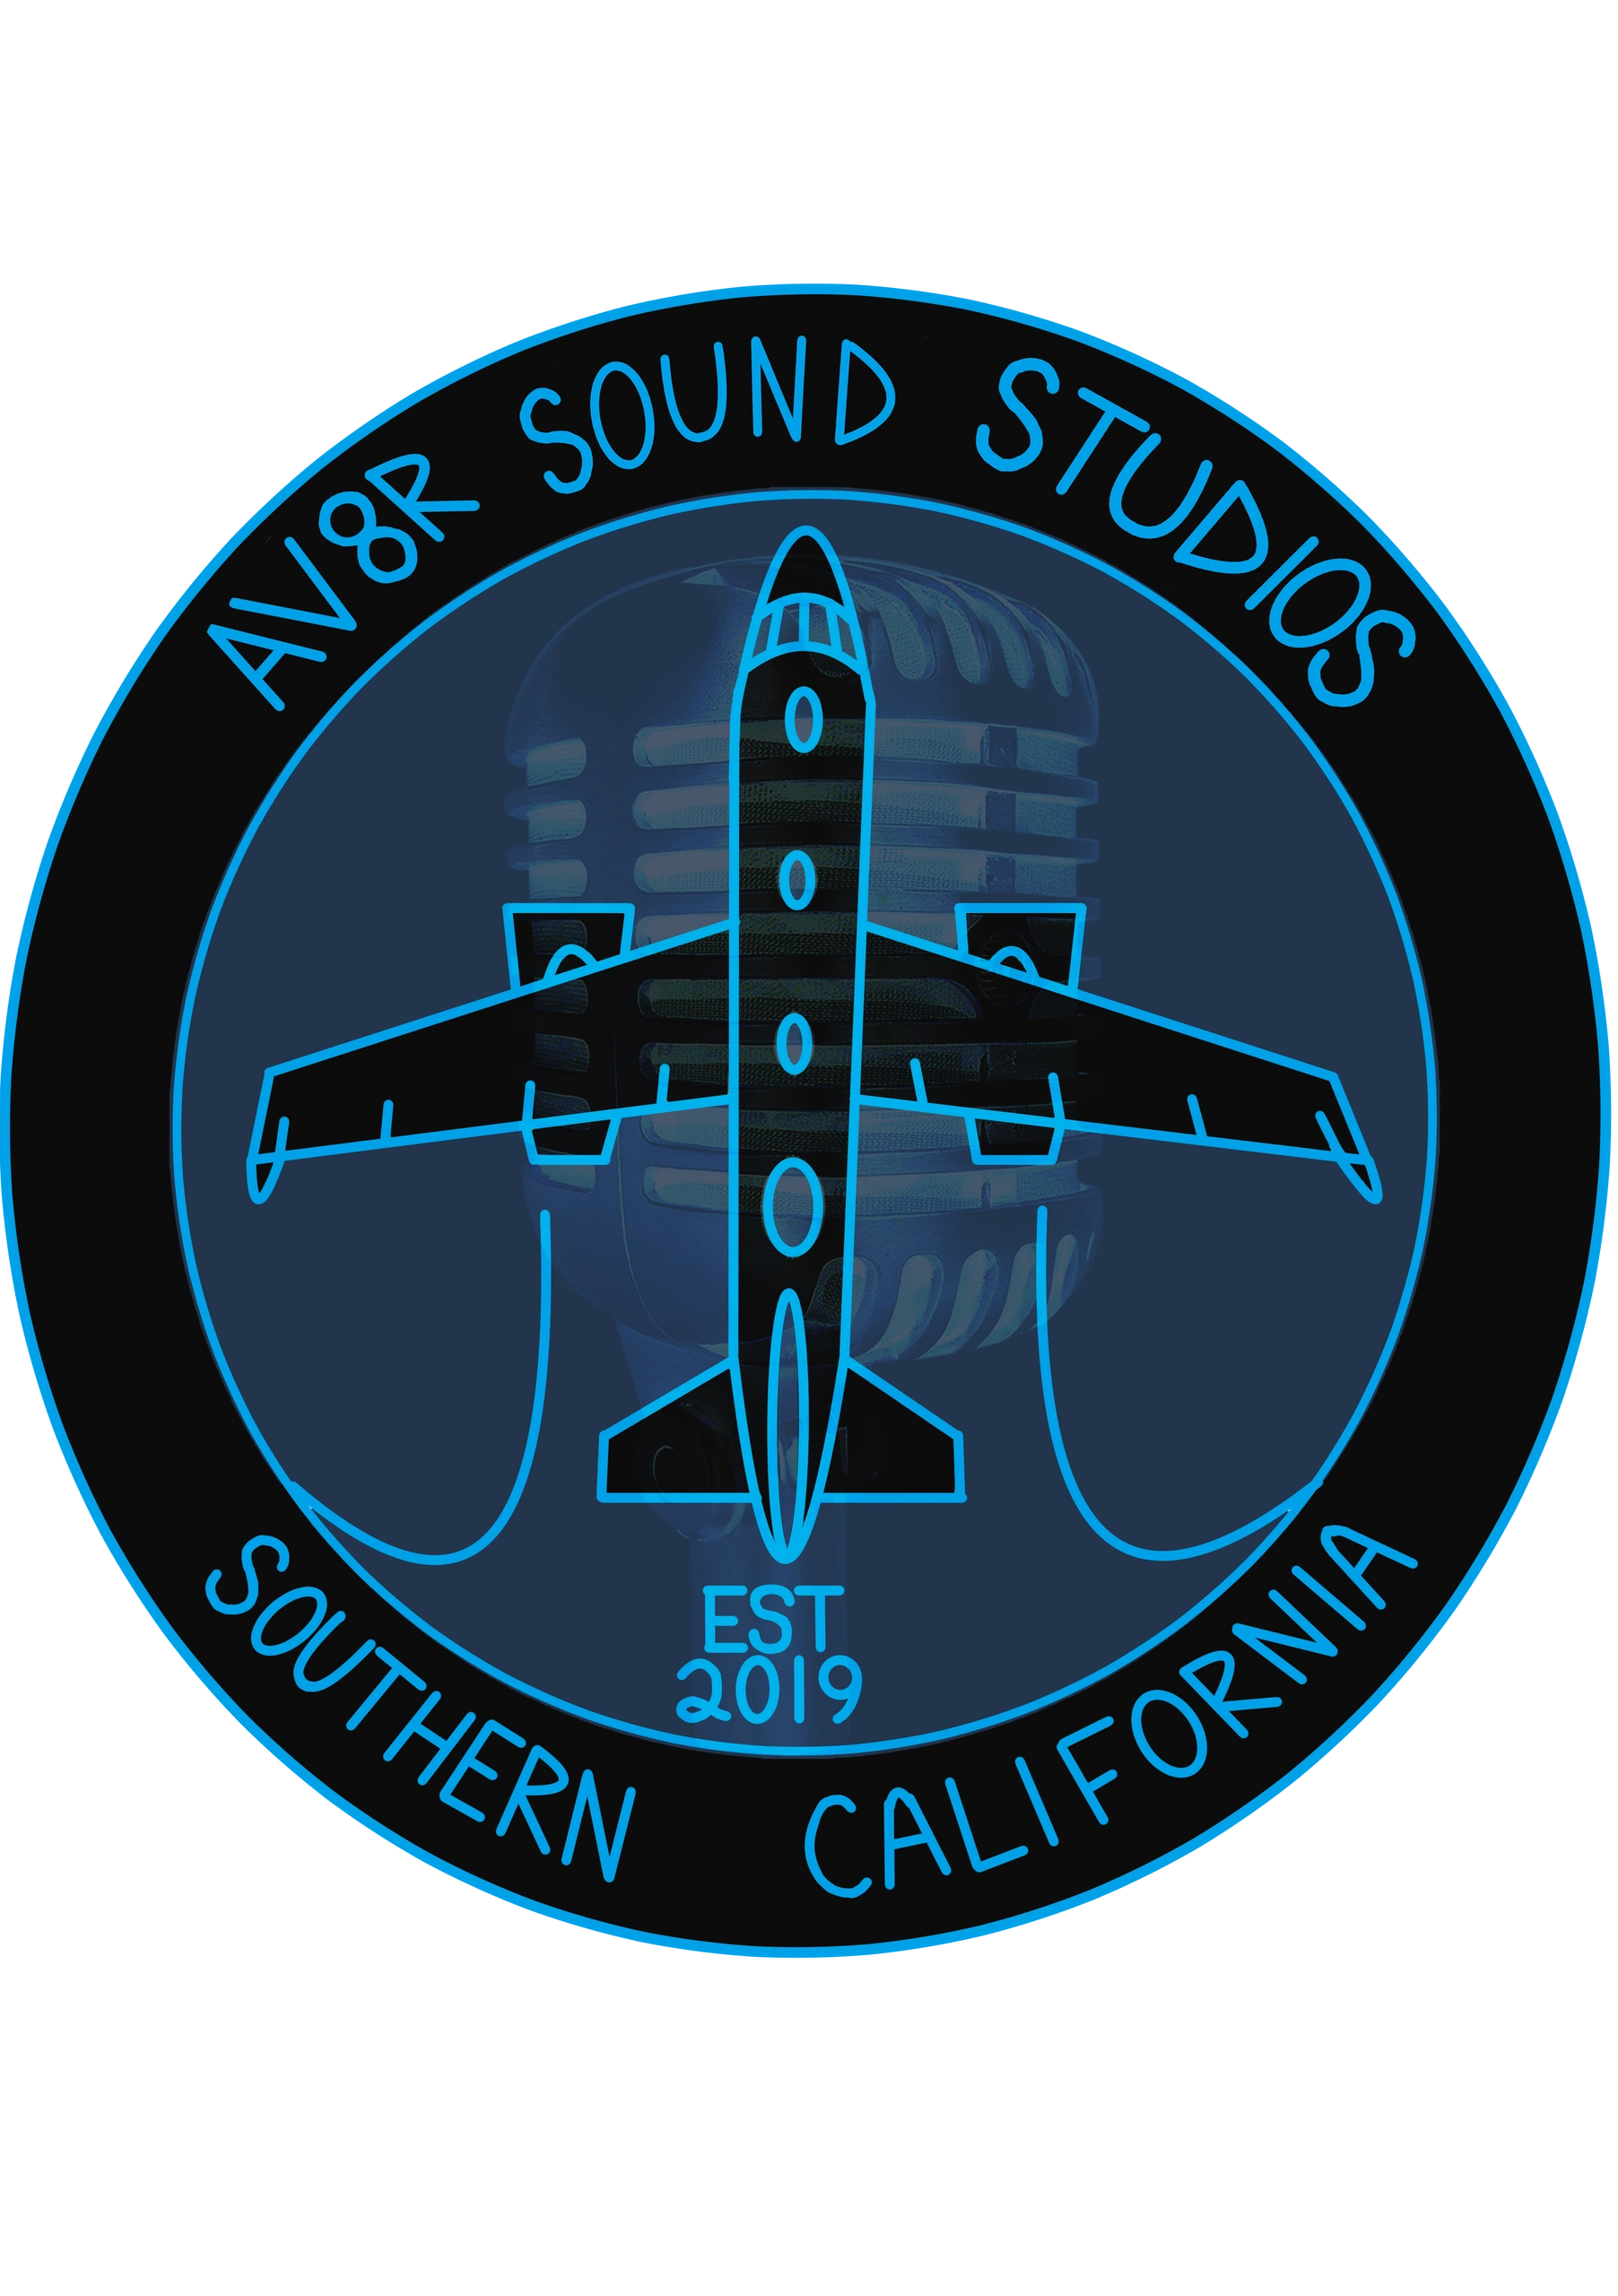 Av8r Sound Studios logo Illustrated by Mia Ciaravella